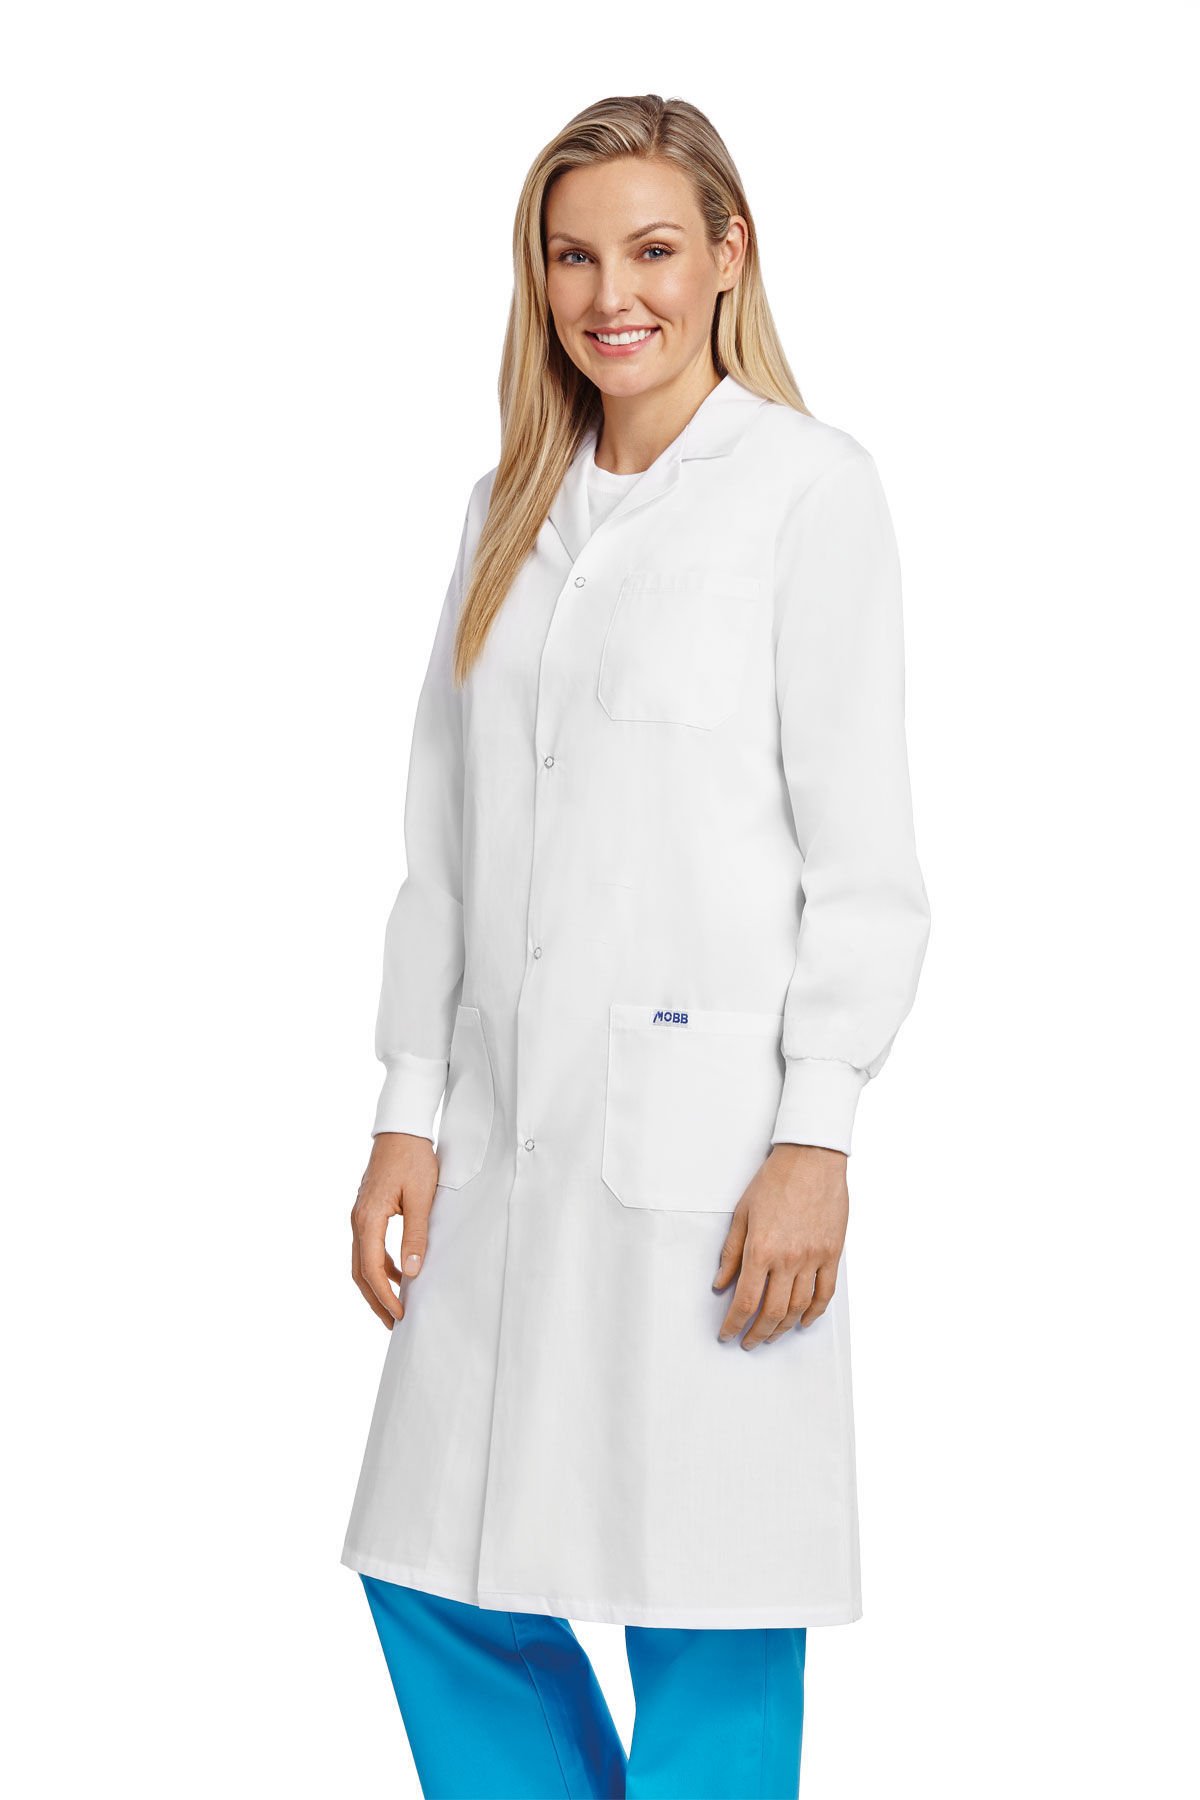 Picture of Full Length Unisex Snap Lab Coat With Knitted Cuffs - L507-XXS